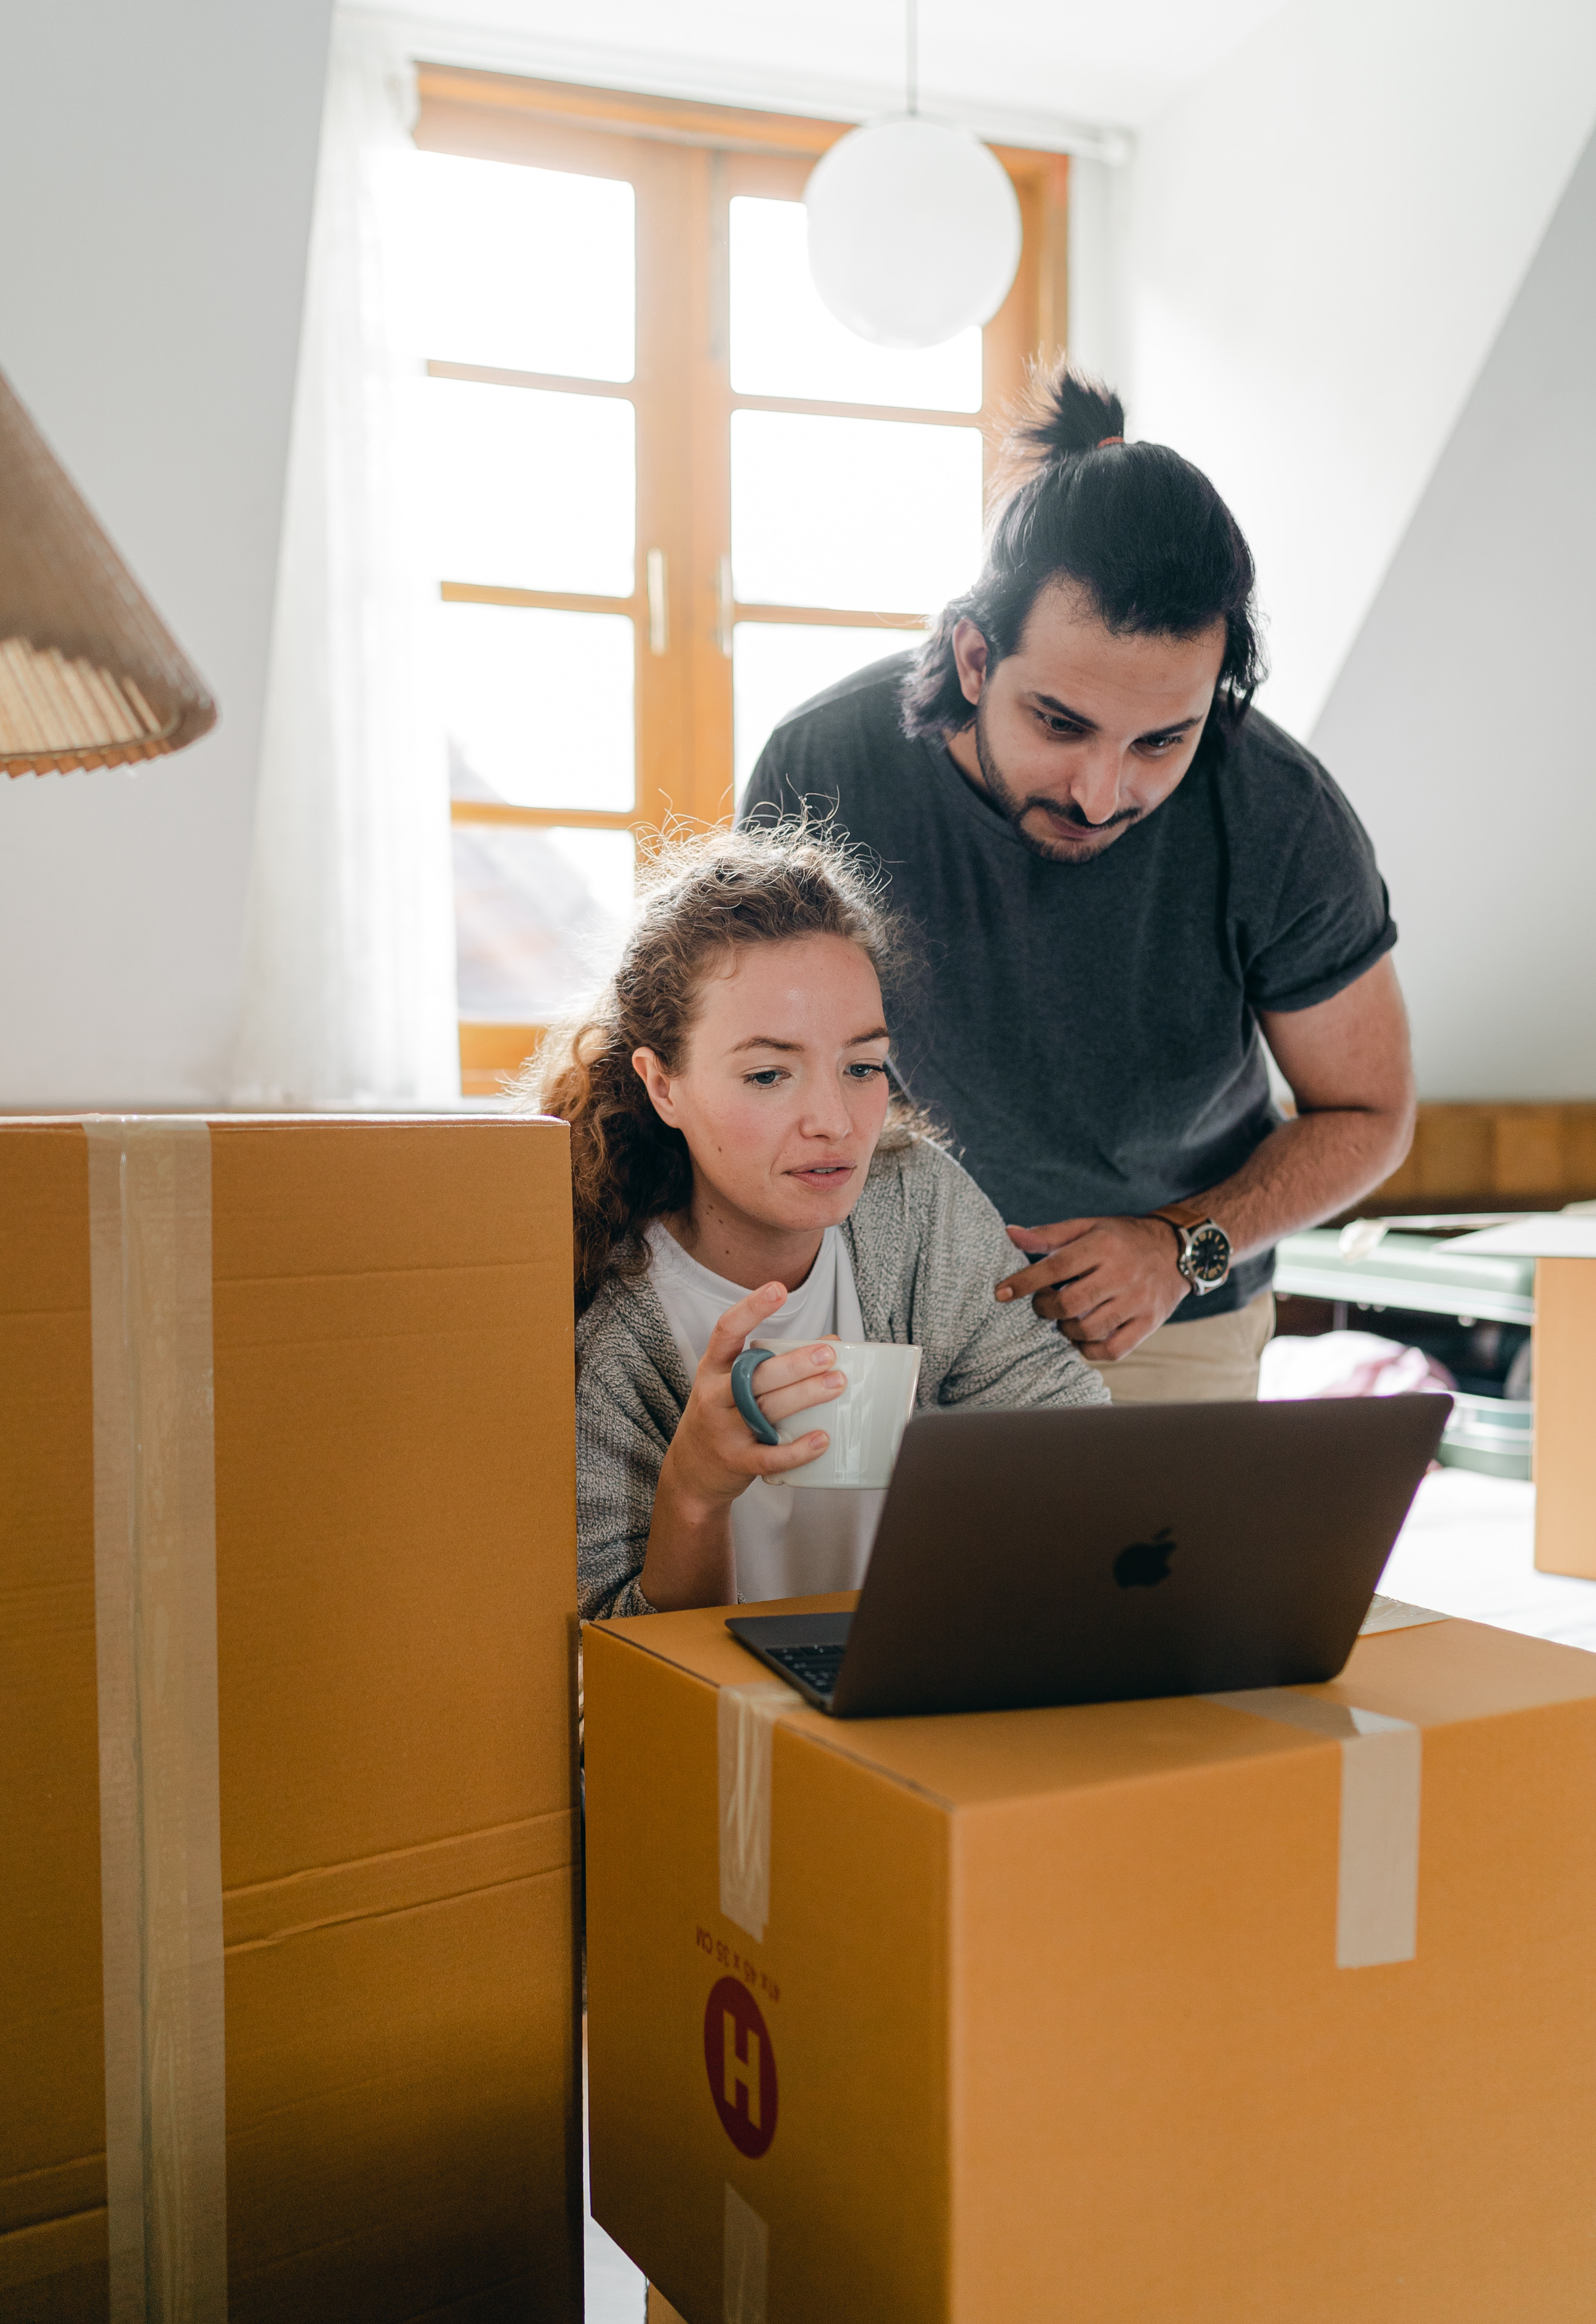 Can You Sell Your Home Safely Now?